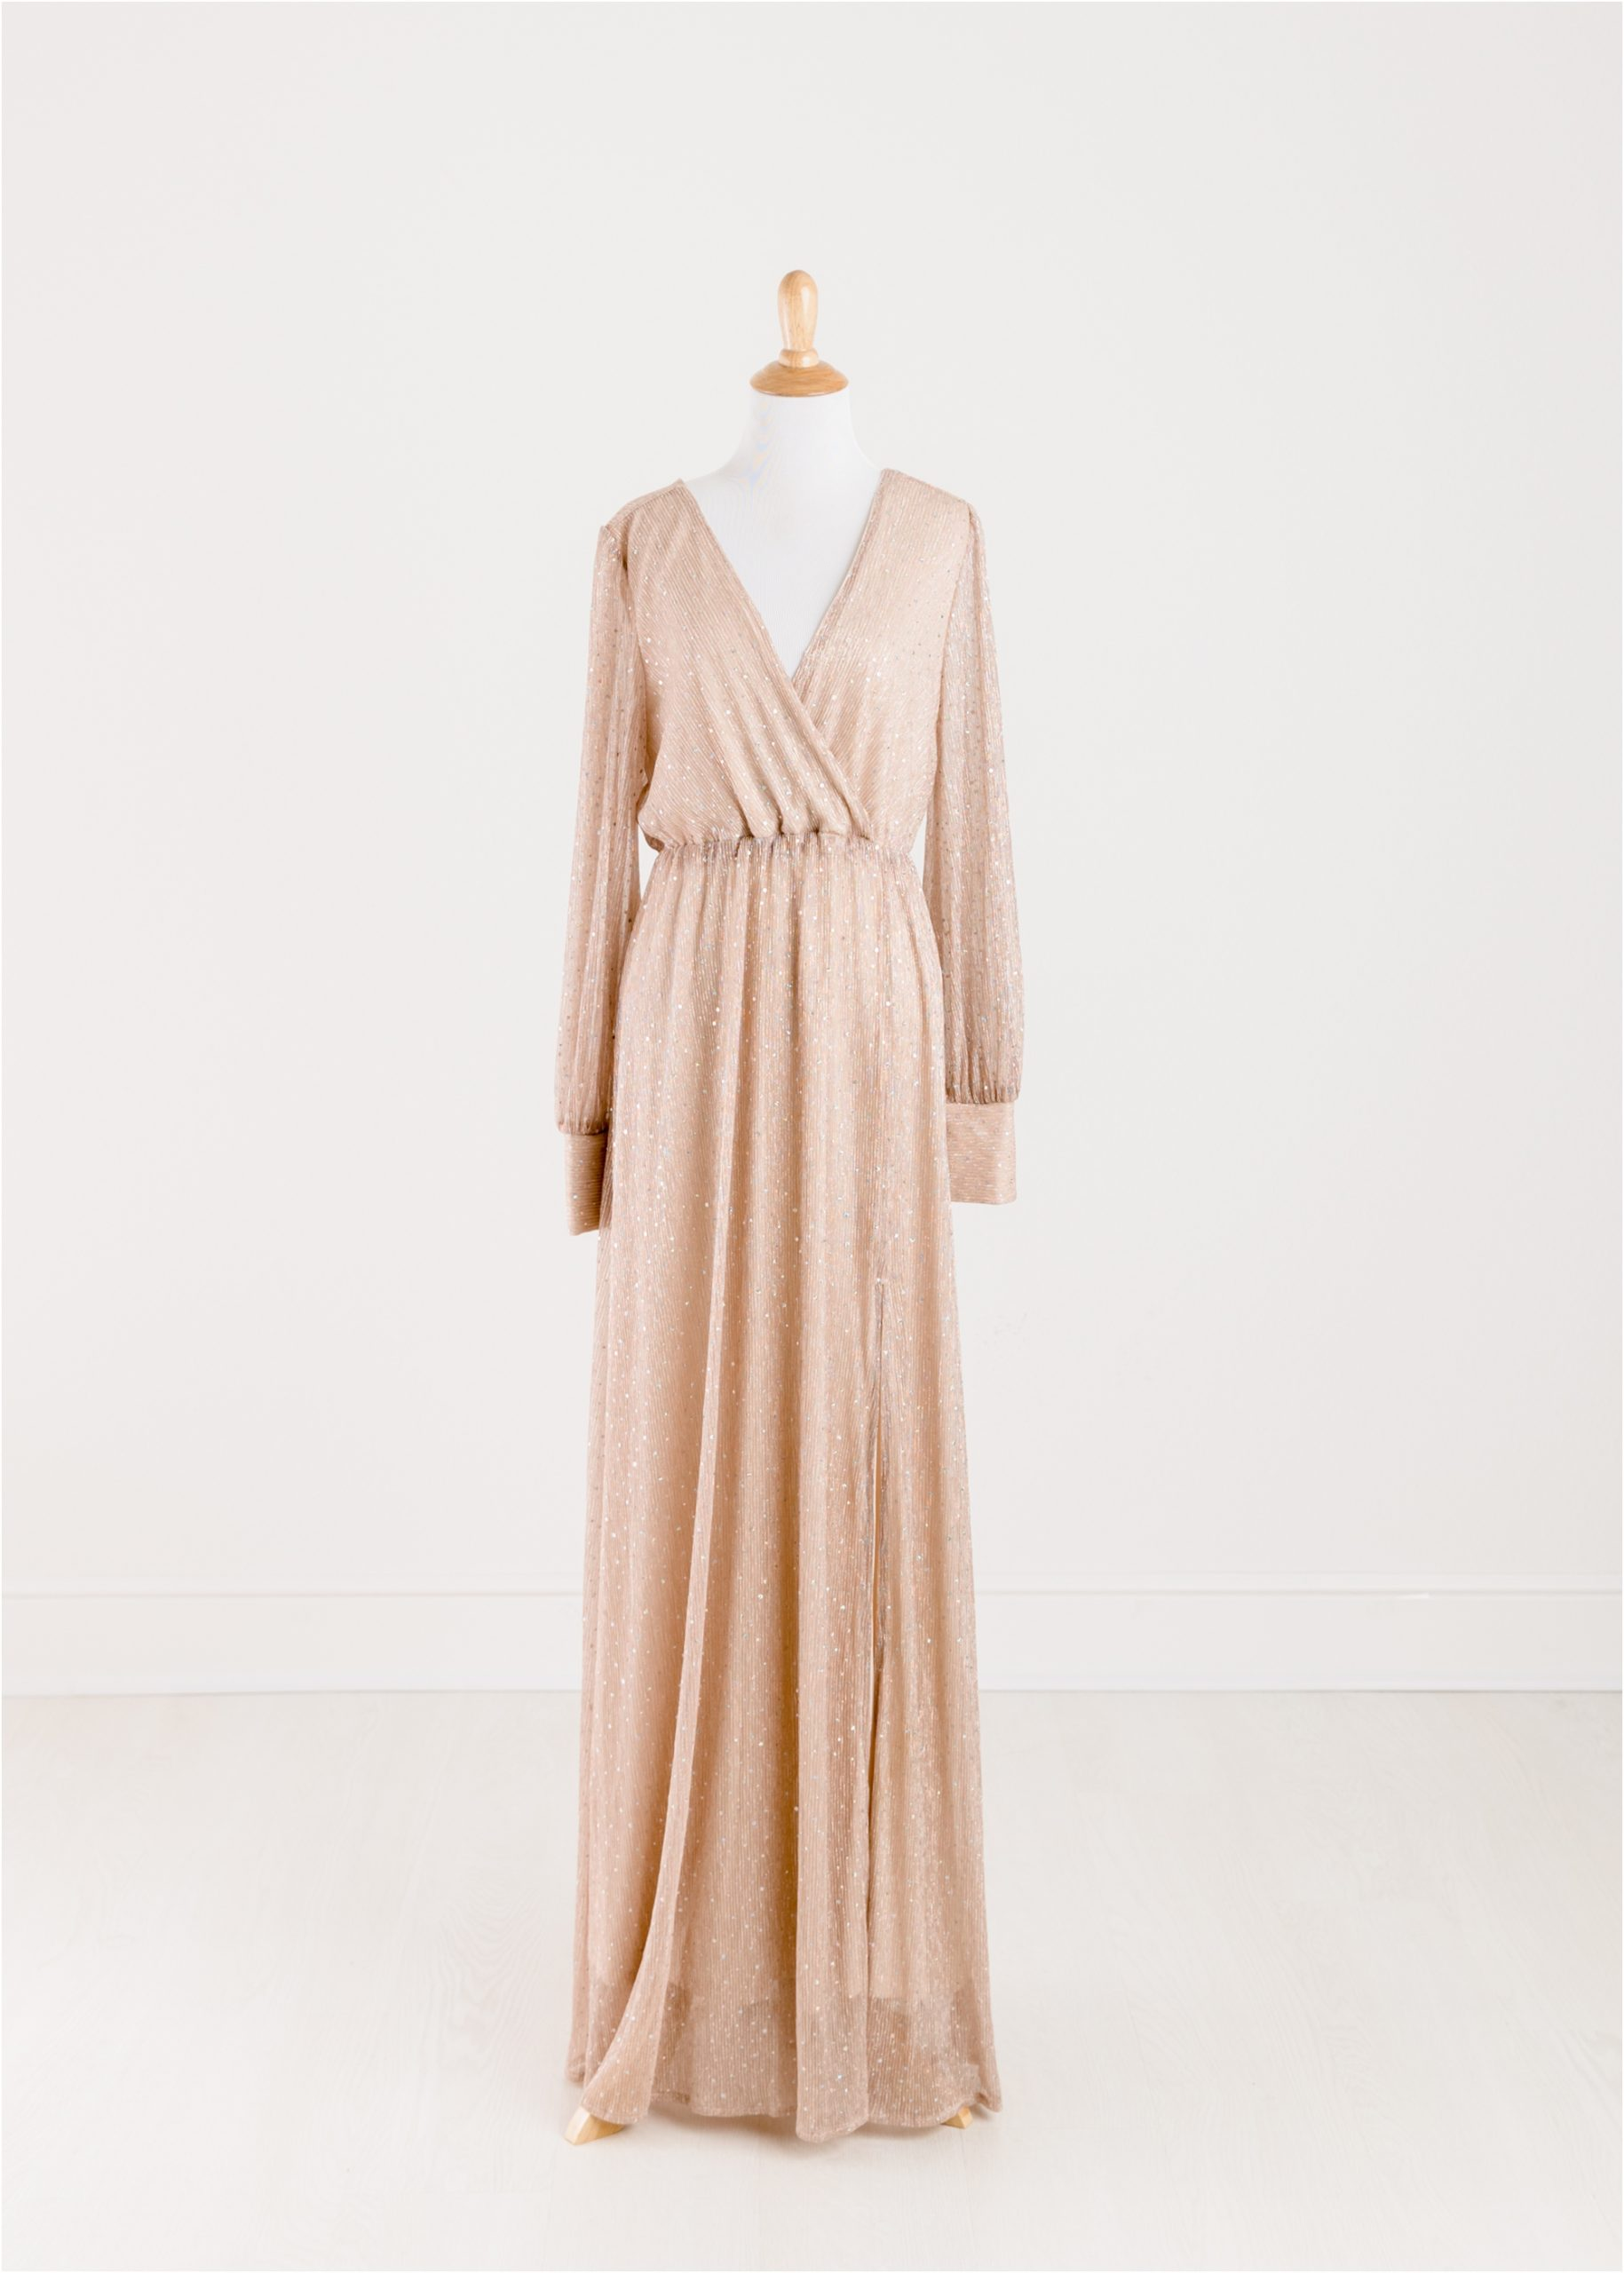 Blush maxi dress with sleeves provided by the Client Wardrobe of Lifetime of Clicks Photography.